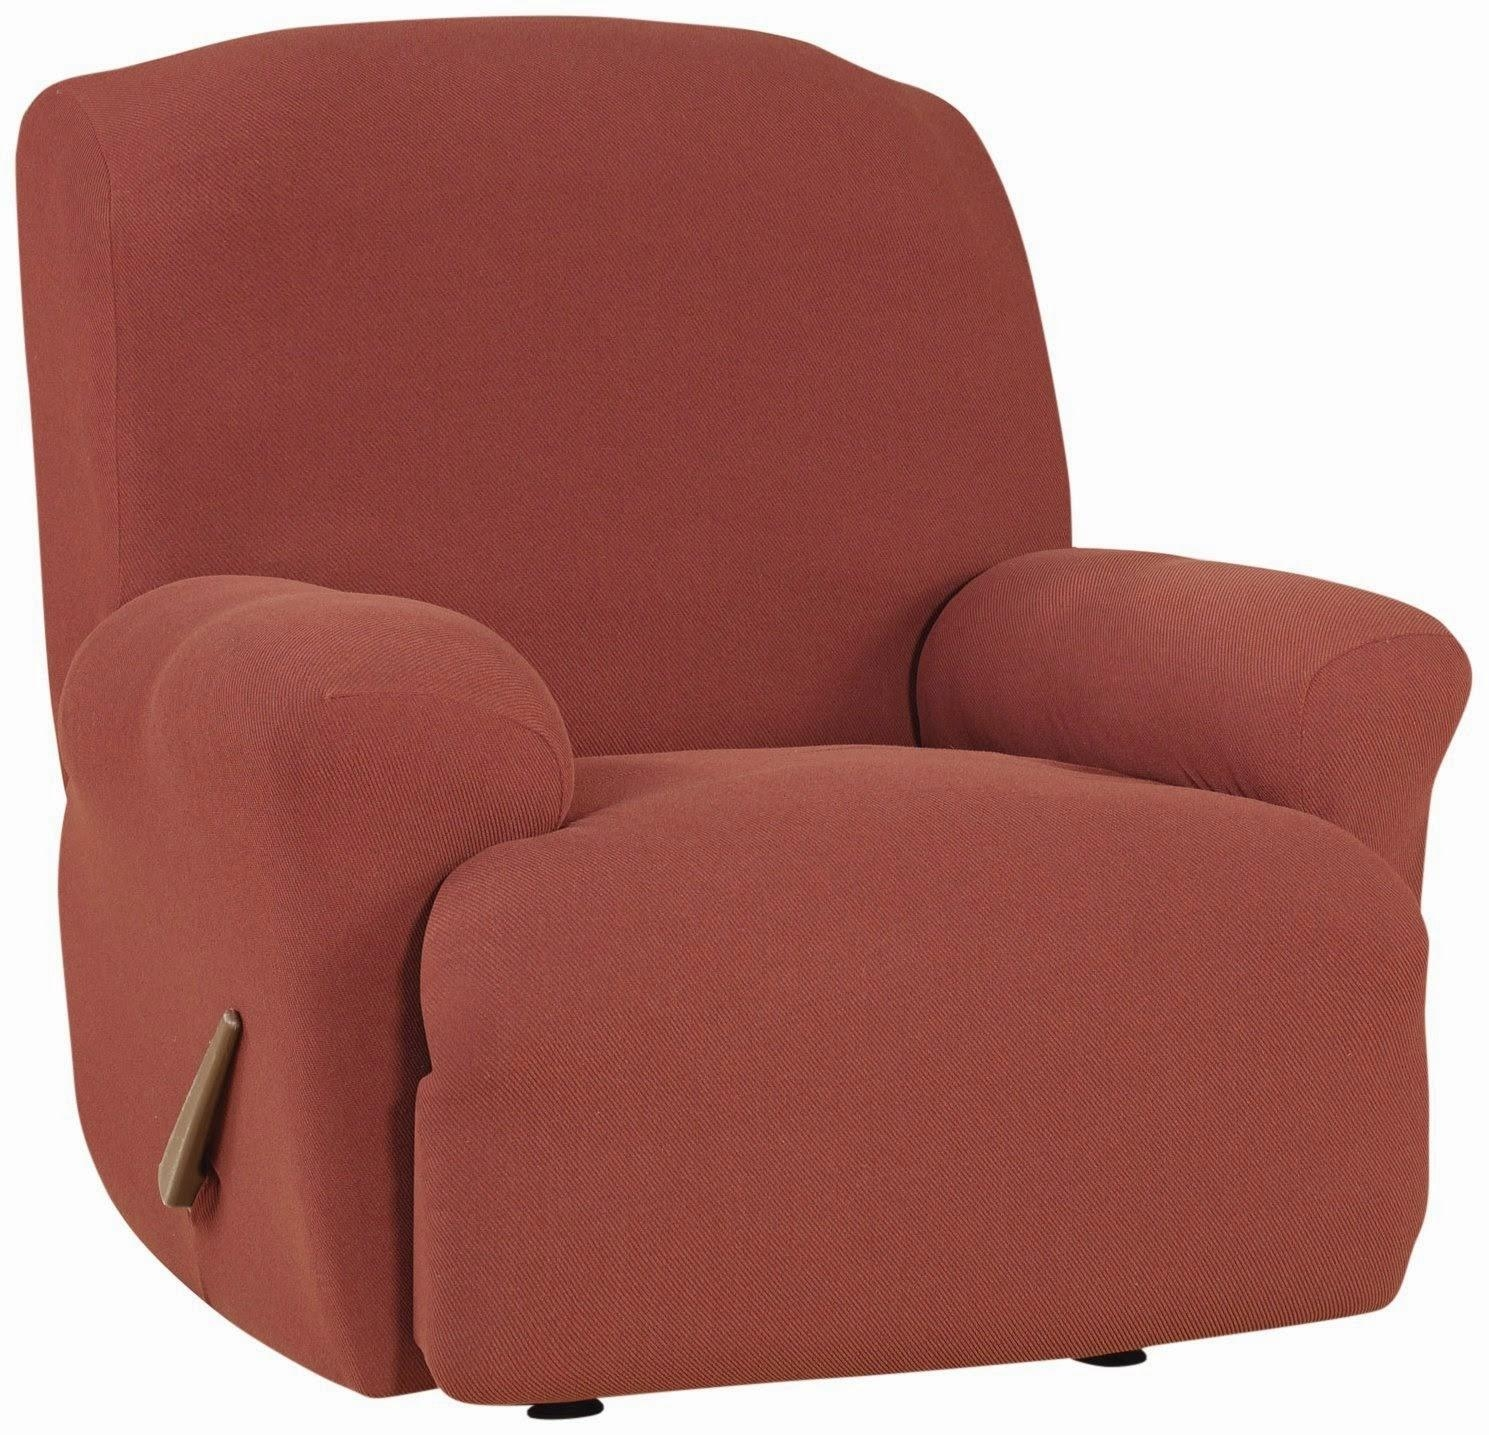 Sofa Recliner Sale: Recliner Sofa Slipcovers Walmart Intended For Slipcover For Recliner Sofas (View 19 of 20)